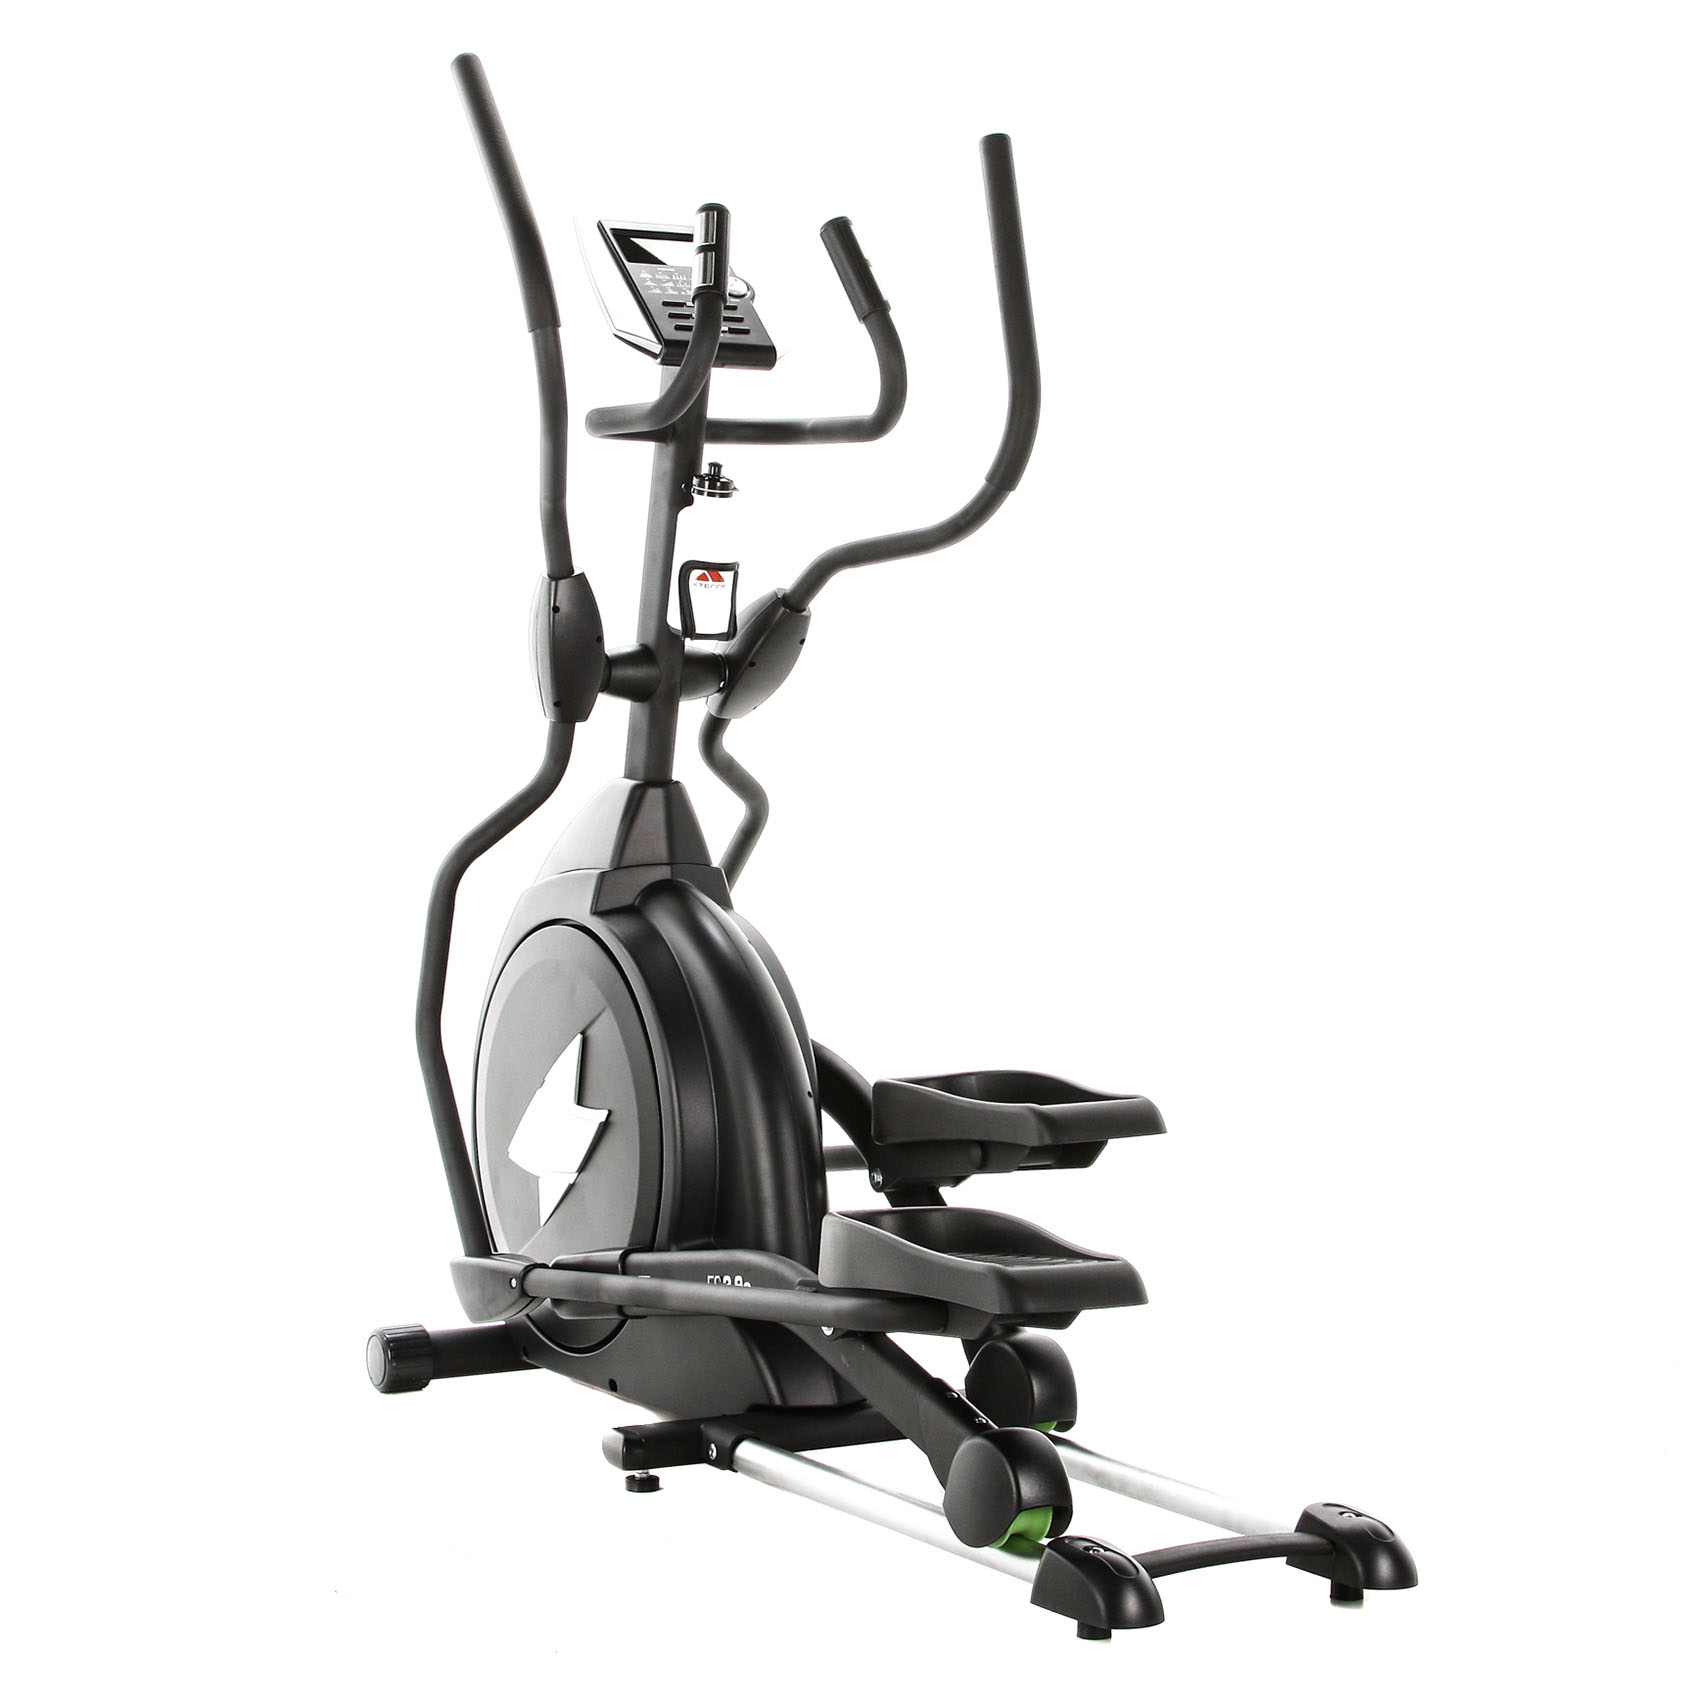 Elliptical Prices Compare India, Weight Machines Slow Or